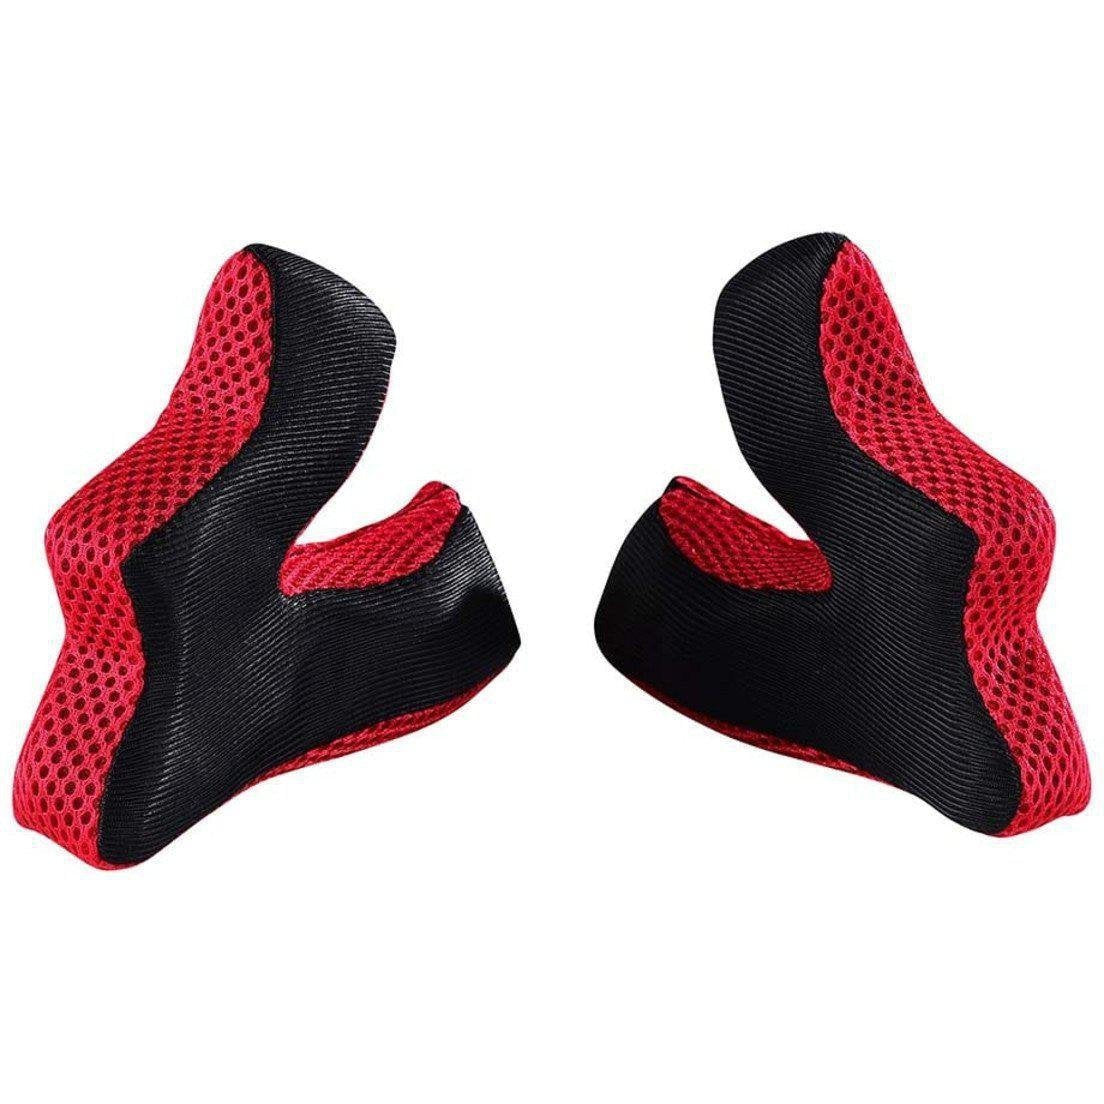 Troy Lee Designs-Troy Lee Designs D3 3D Replacement Cheekpad Padding-Red-XS-TLD149144401-saddleback-elite-performance-cycling